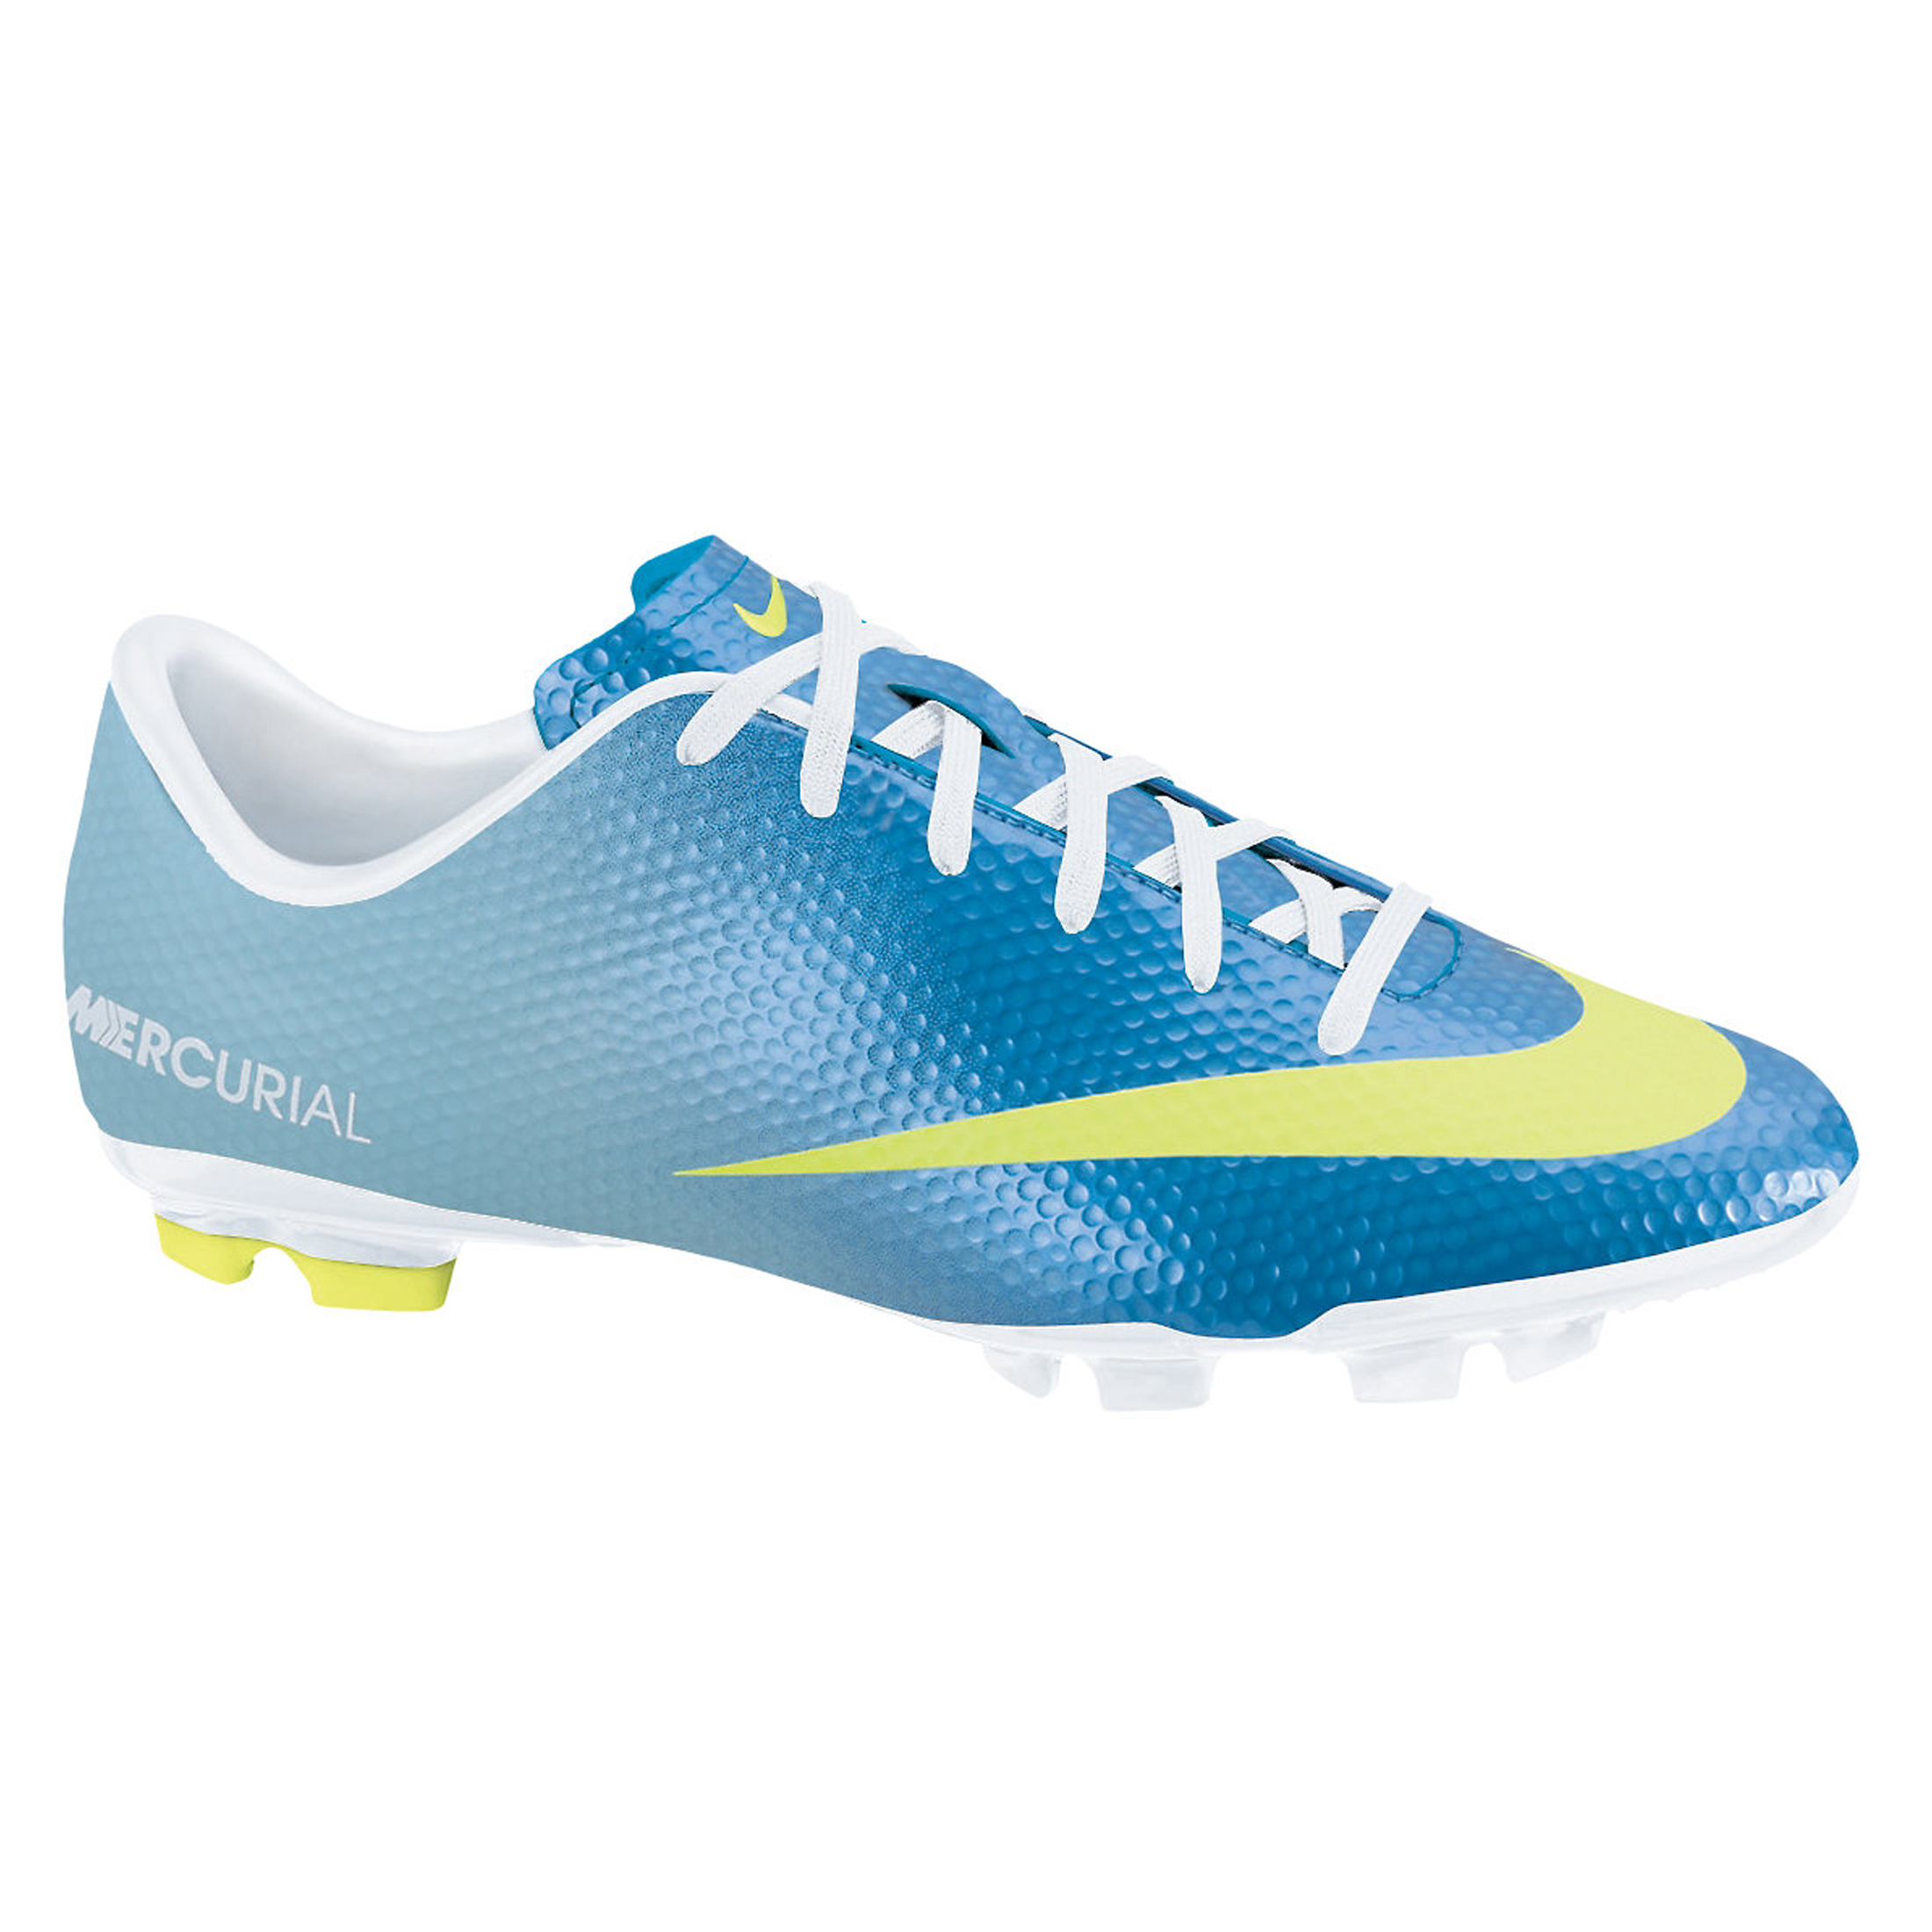 Nike Mercurial Victory IV Firm Ground Football Boots - Neptune Blue/Volt/Toad Pool Blue - Kids